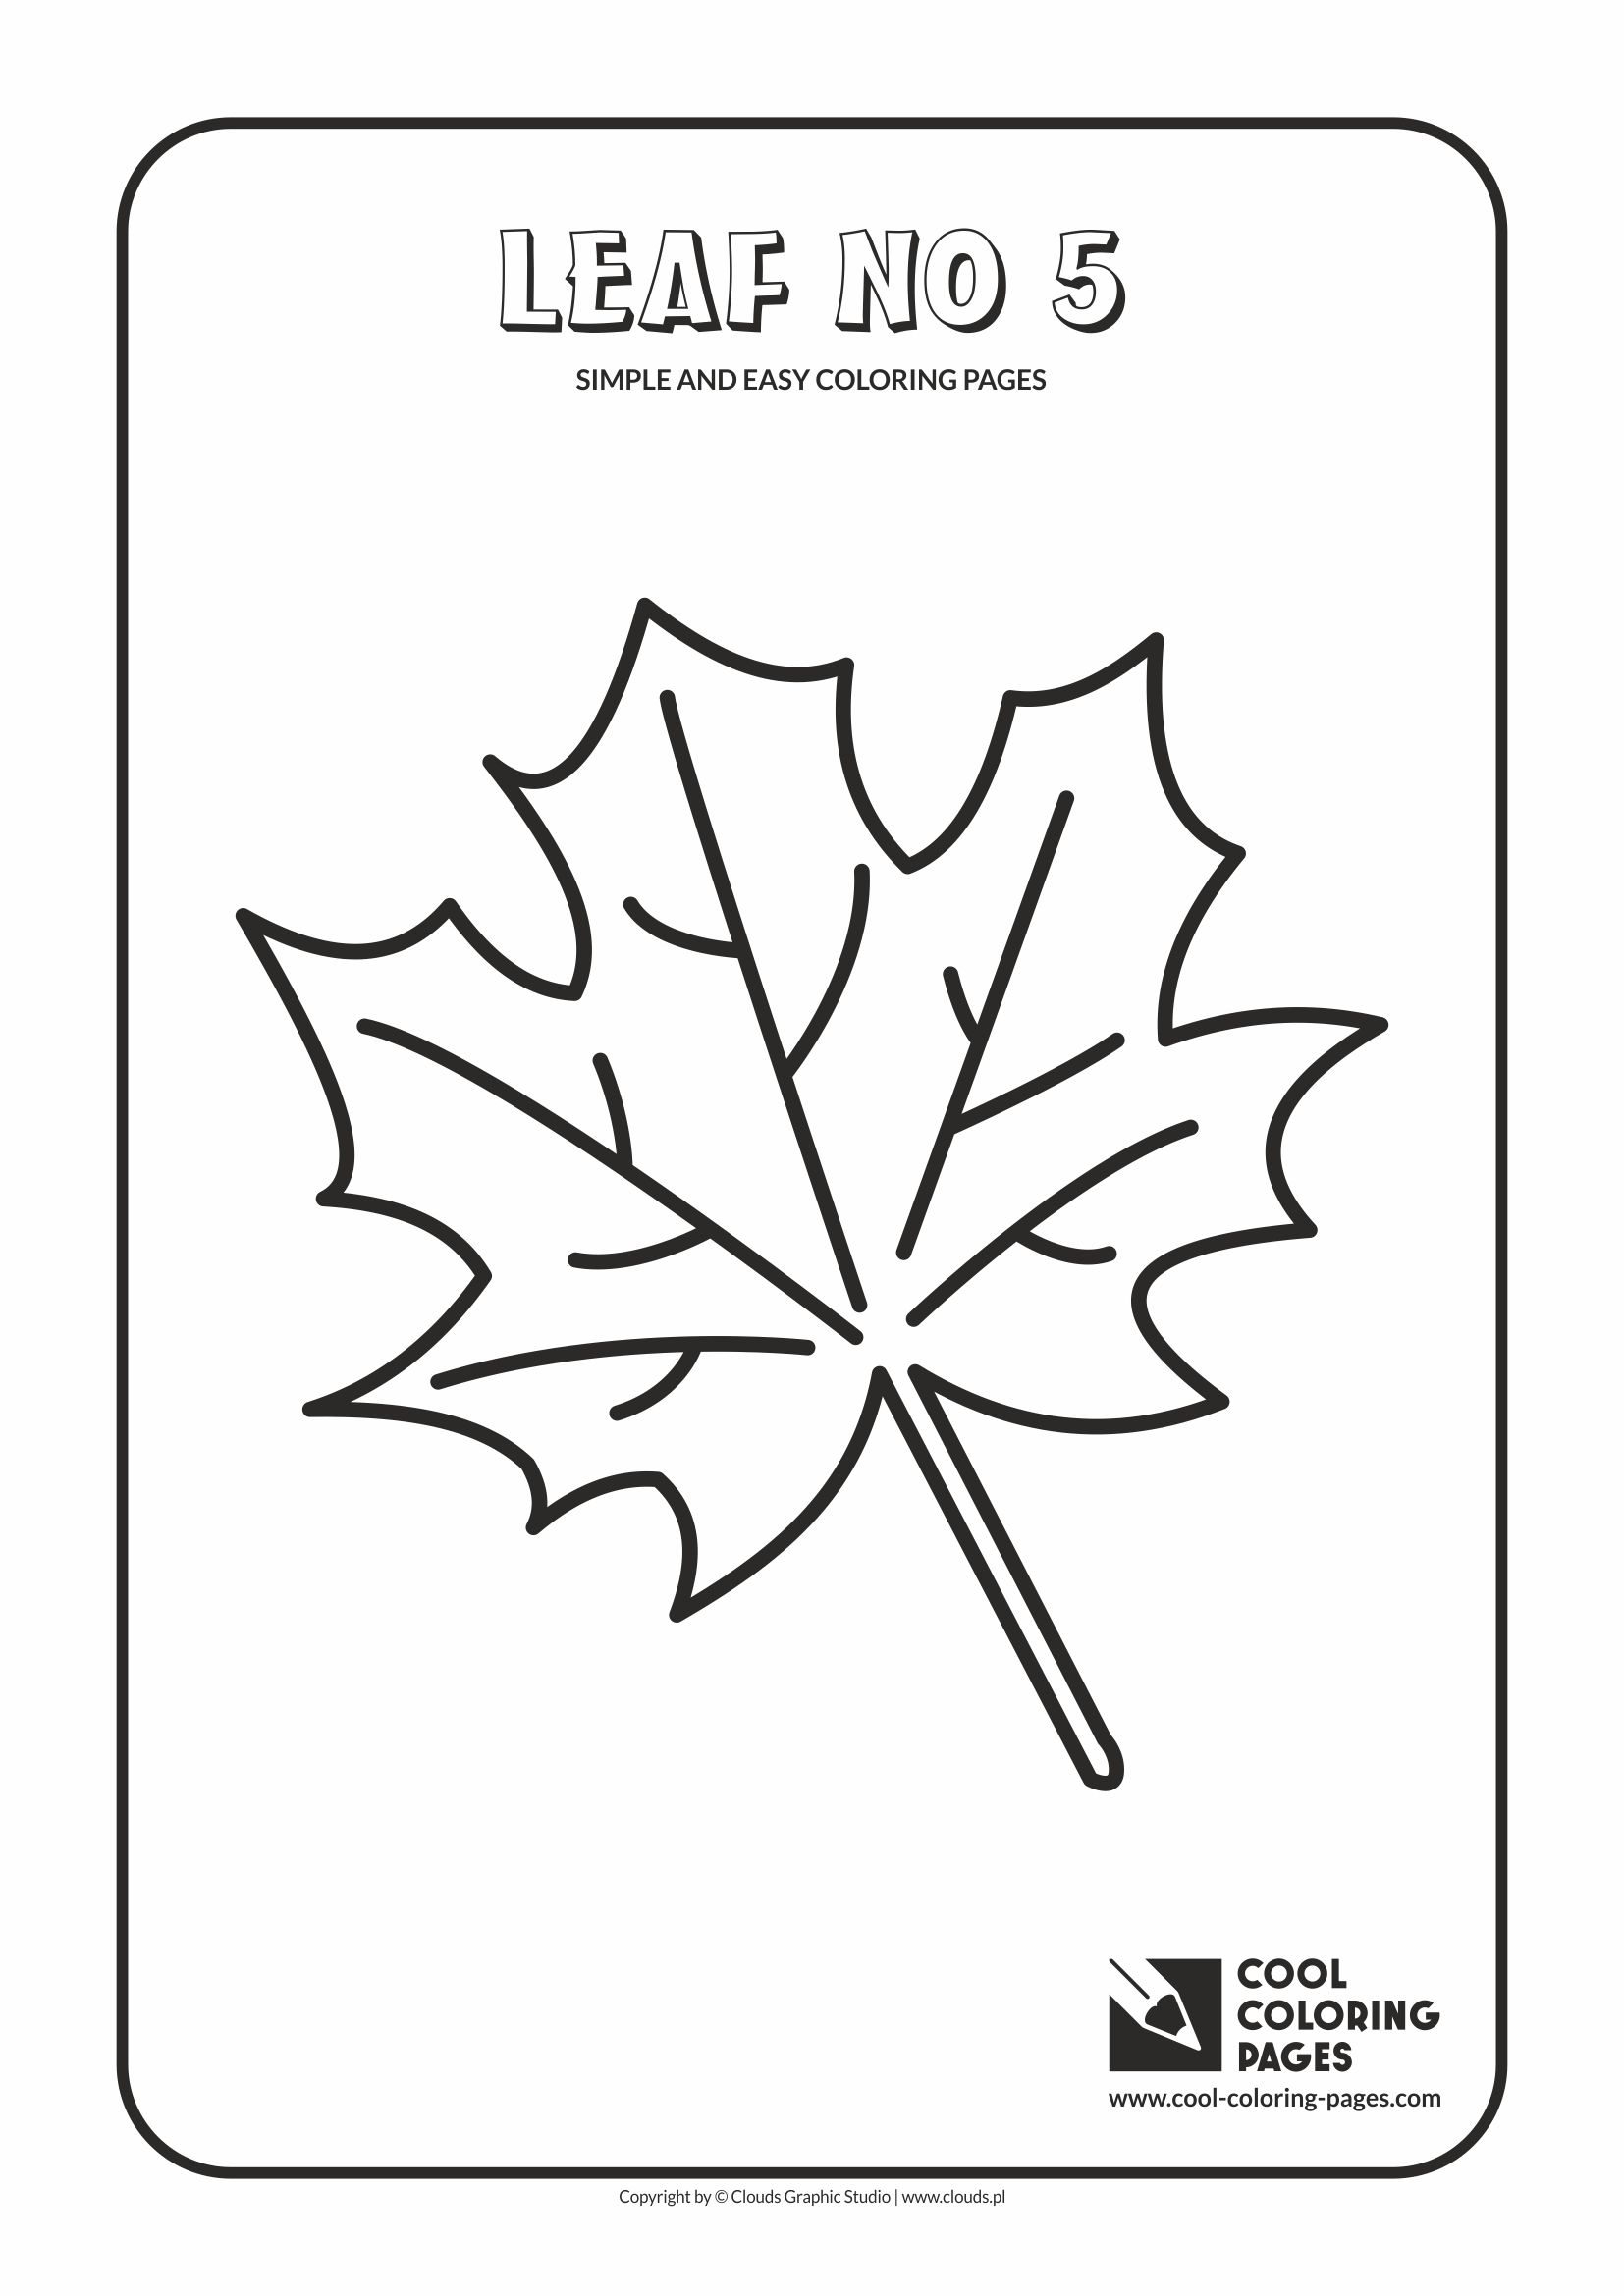 Simple and easy coloring pages for toddlers - Leaf no 5